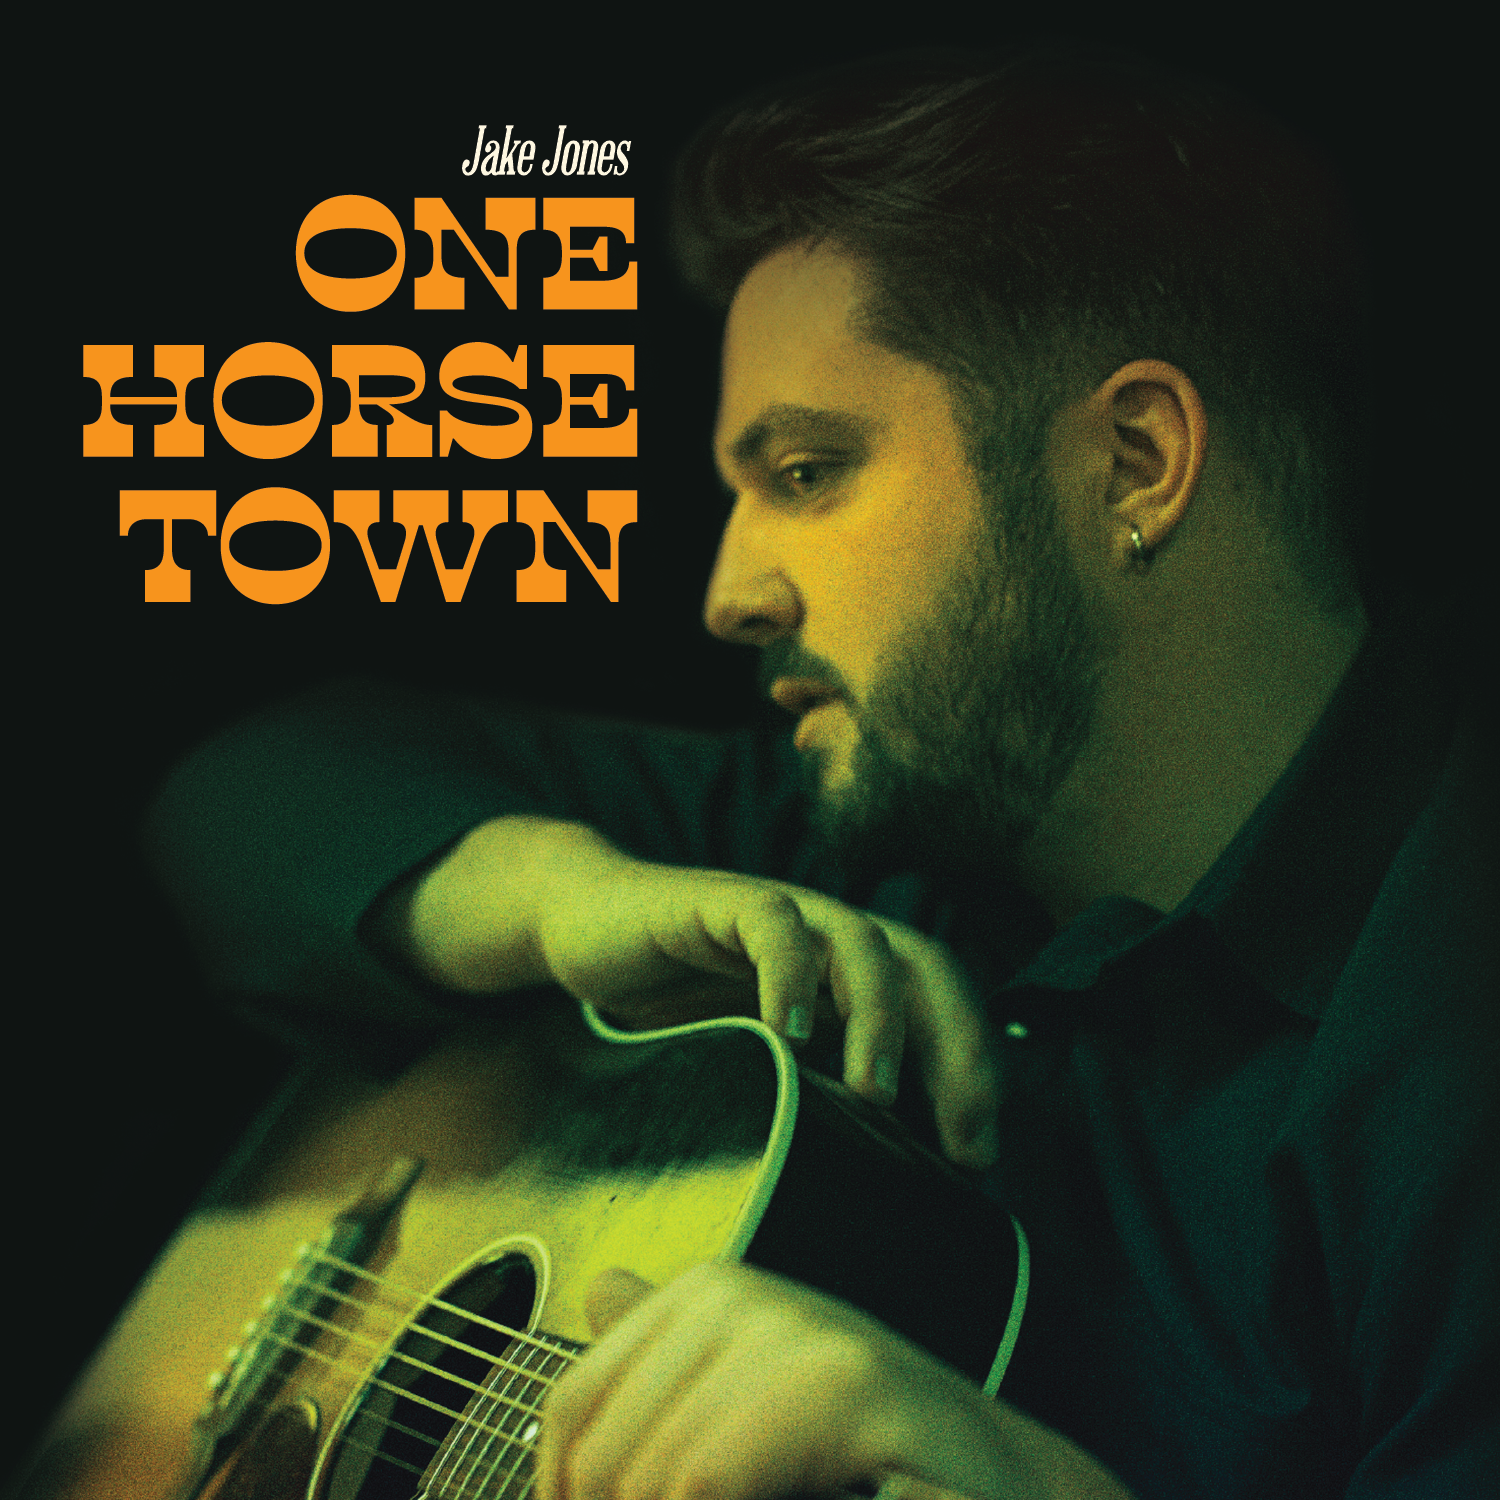 FEATURING FIVE BRAND NEW SONGS! - Jake's third release, One Horse Town, parades his growth as a rising songwriter and musician. Recorded over St. Patrick's Day weekend 2018, each song on the EP was live tracked, without headphones or a metronome, to foster an organic sound that captures the raw energy and authenticity of a live performance. Drawing inspiration from John Prine, Willie Nelson, Sturgill Simpson, and Jason Isbell, Jake blends the stylings of Americana, Country, Rock and Roll, and Blues, forging a sonic print that is distinctly unique and yet immediately familiar. From the fear of wasted youth and waning ambition to the hope for something better, Jake's One Horse Town opens doors to places we've all been before.Track List:01. High Noon02. Pale Blue Dot03. Rat Race04. Ohio05. One Horse Town